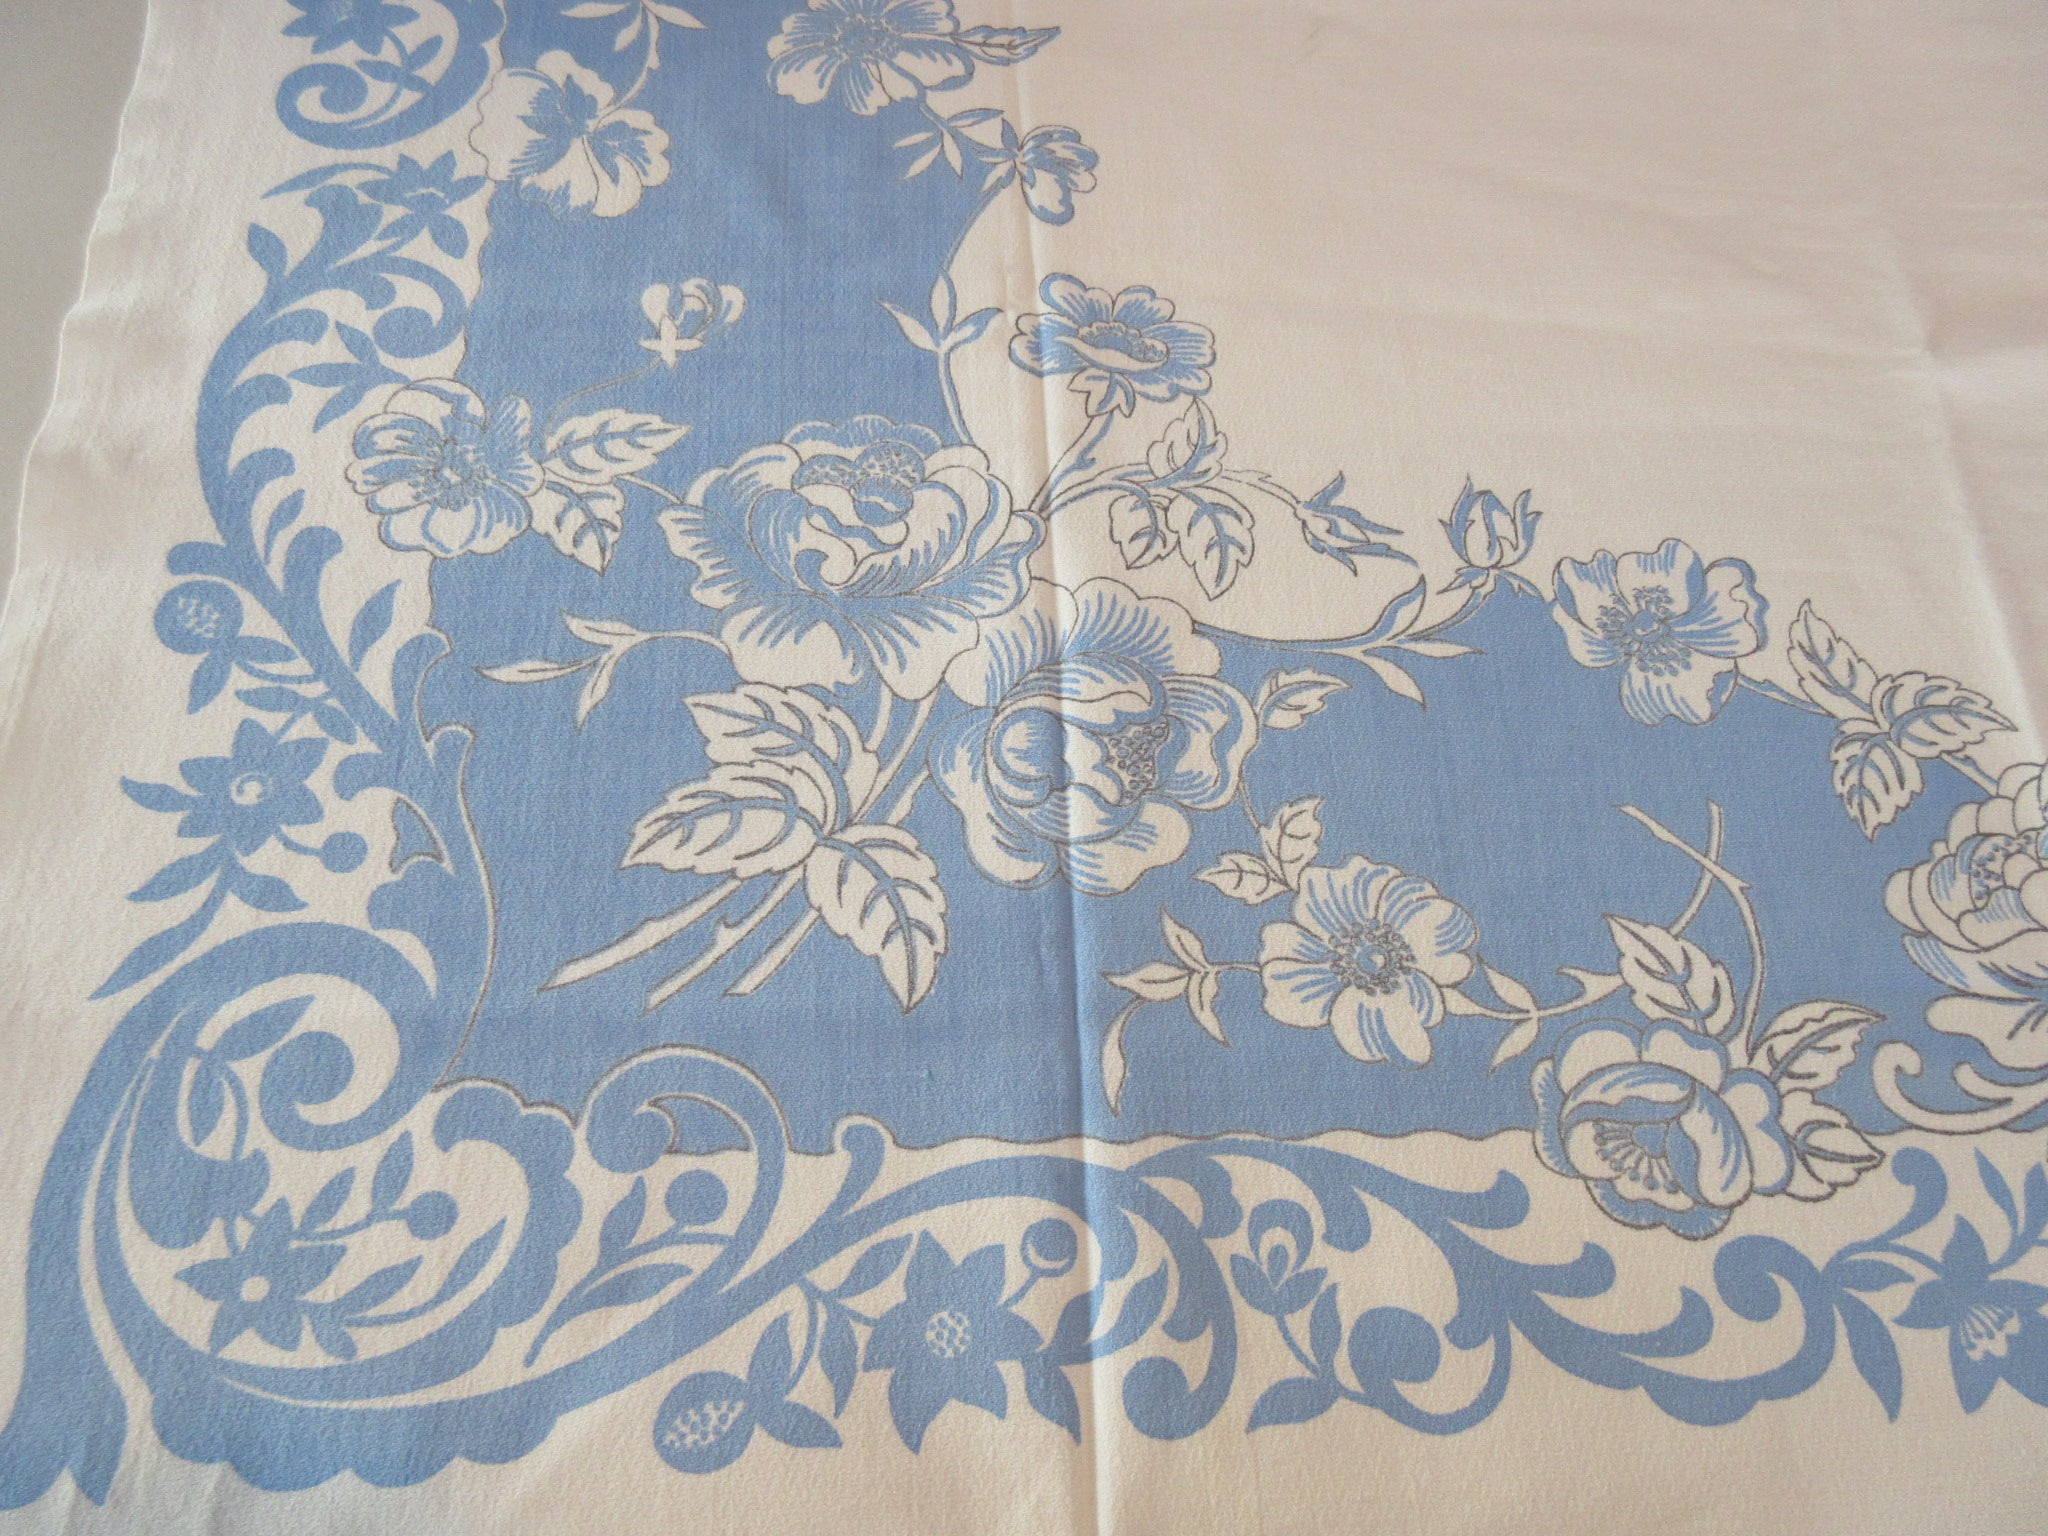 Peonies on French Blue Scrolls Floral Vintage Printed Tablecloth (46 X 46)